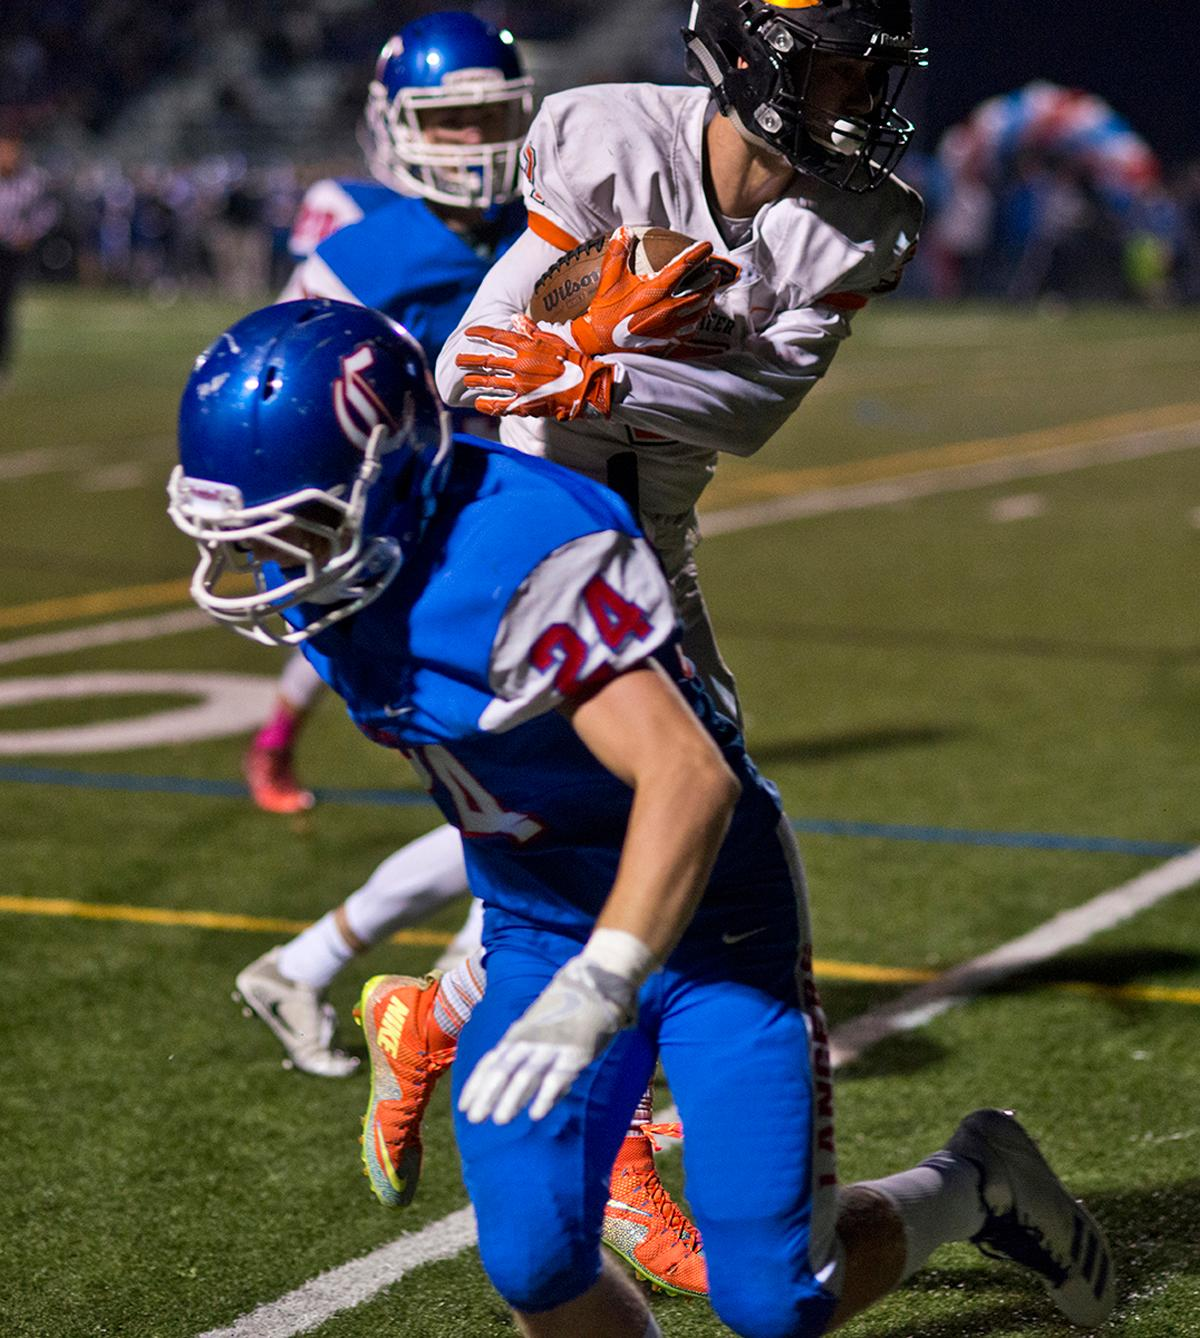 Crater Comets wide receiver Bailee Robles (#3) slips past Churchill Lancers defensive back Evan Powell (#24) to rack up yardage. Churchill defeated Crater 63-21 on Friday at their homecoming game. Churchill remains undefeated with a conference record of 9-0. Photo by Dan Morrison, Oregon News Lab